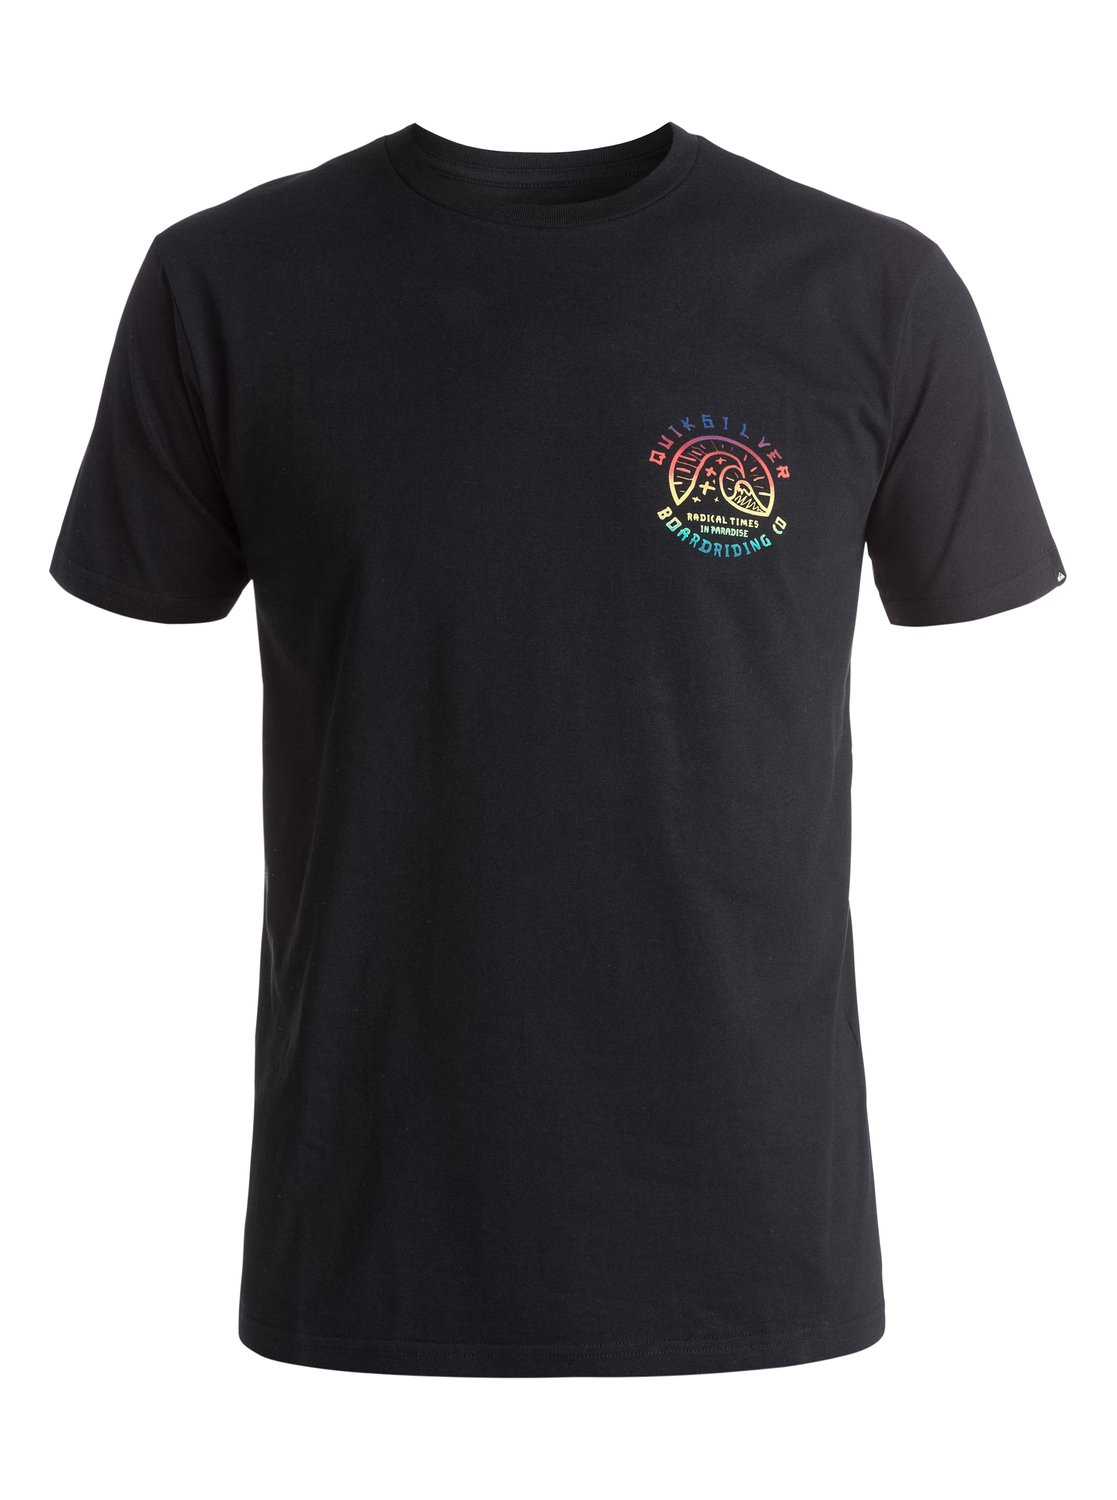 Classic faded times tee shirt 3613371891503 quiksilver for Faded color t shirts